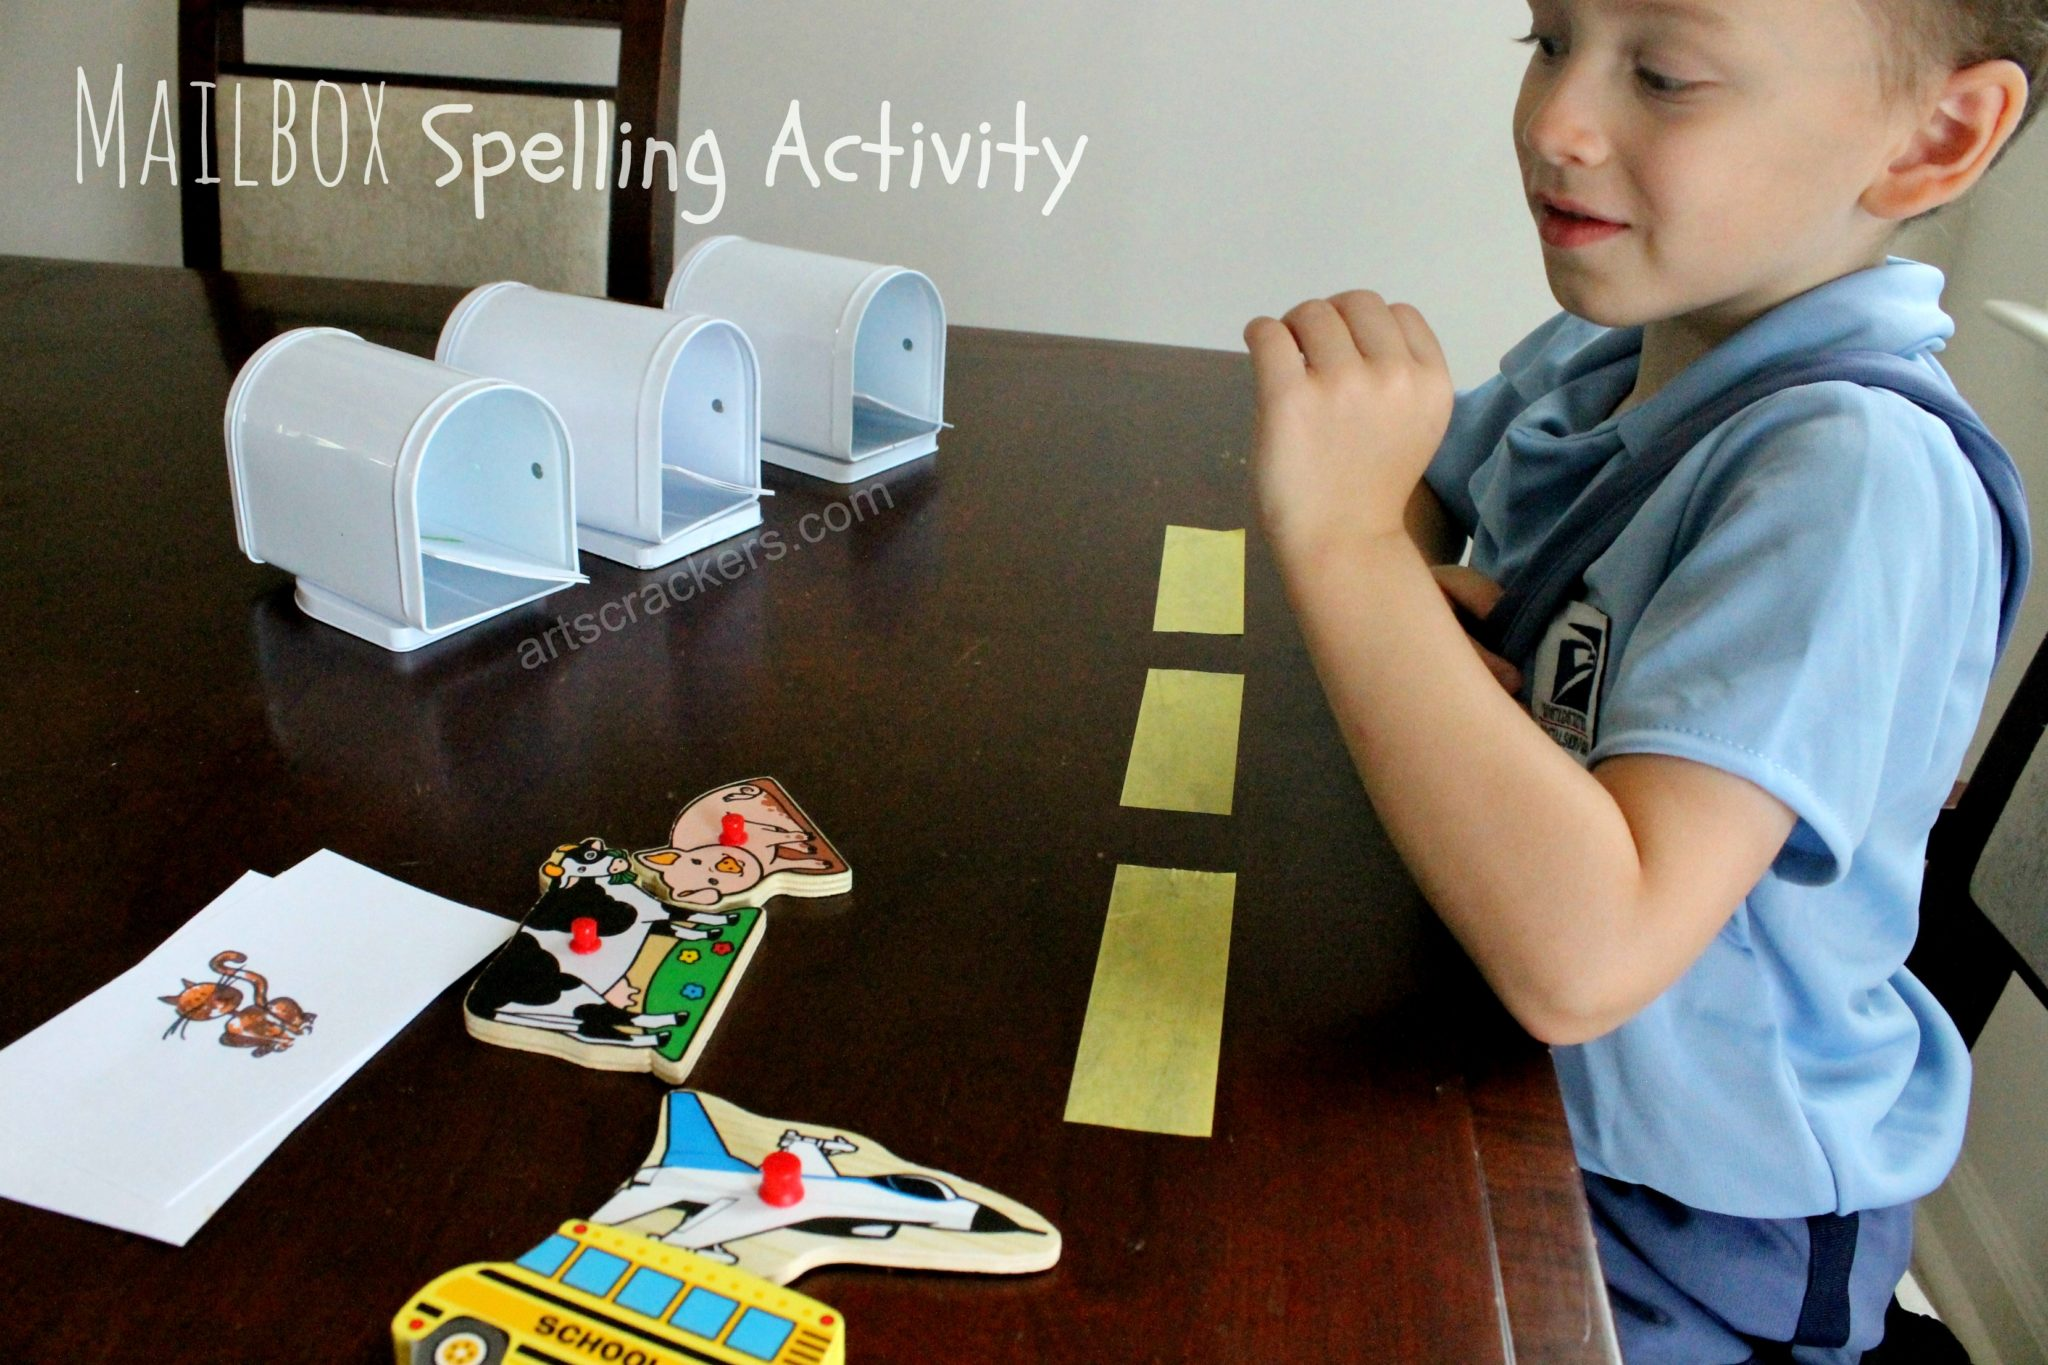 Mailbox Spelling Activity. Click the picture to view the instructions.